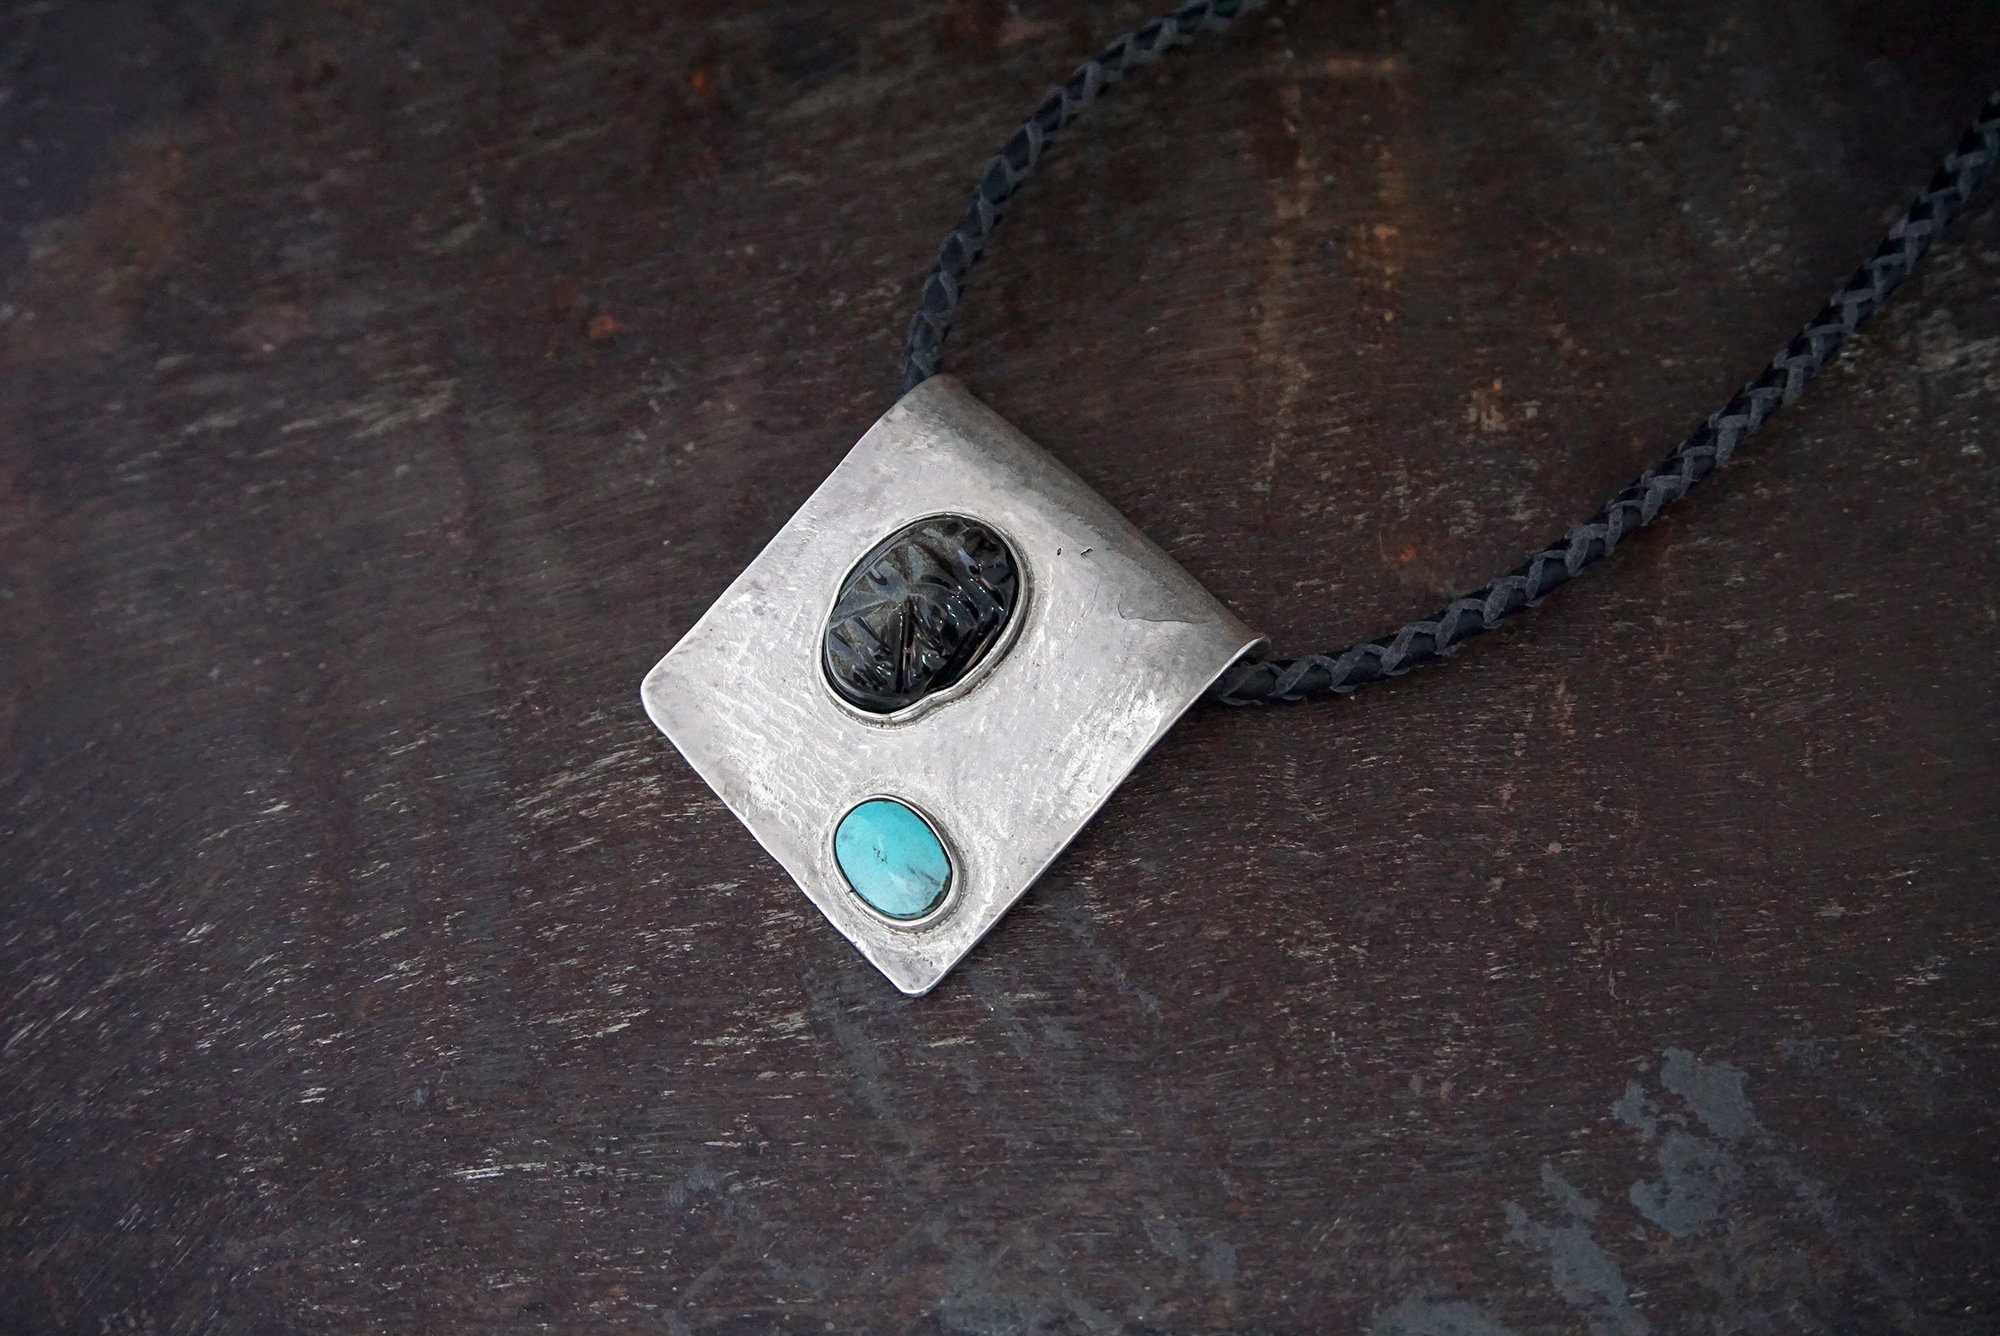 obsidian & turquoise pendant on leather